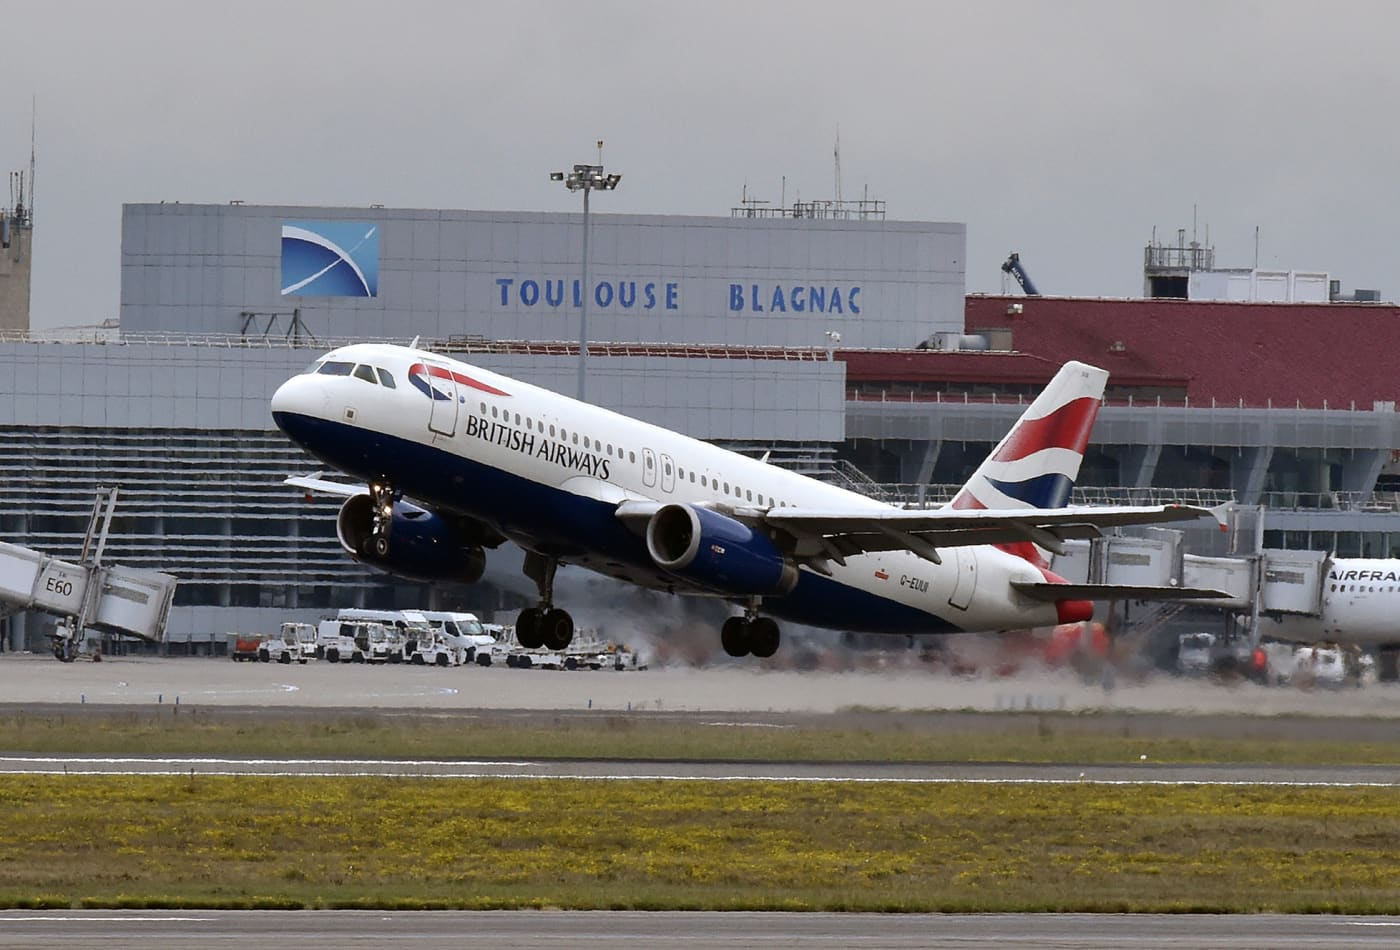 In an unfortunate mix-up, British Airways plane lands in Scotland, not Germany